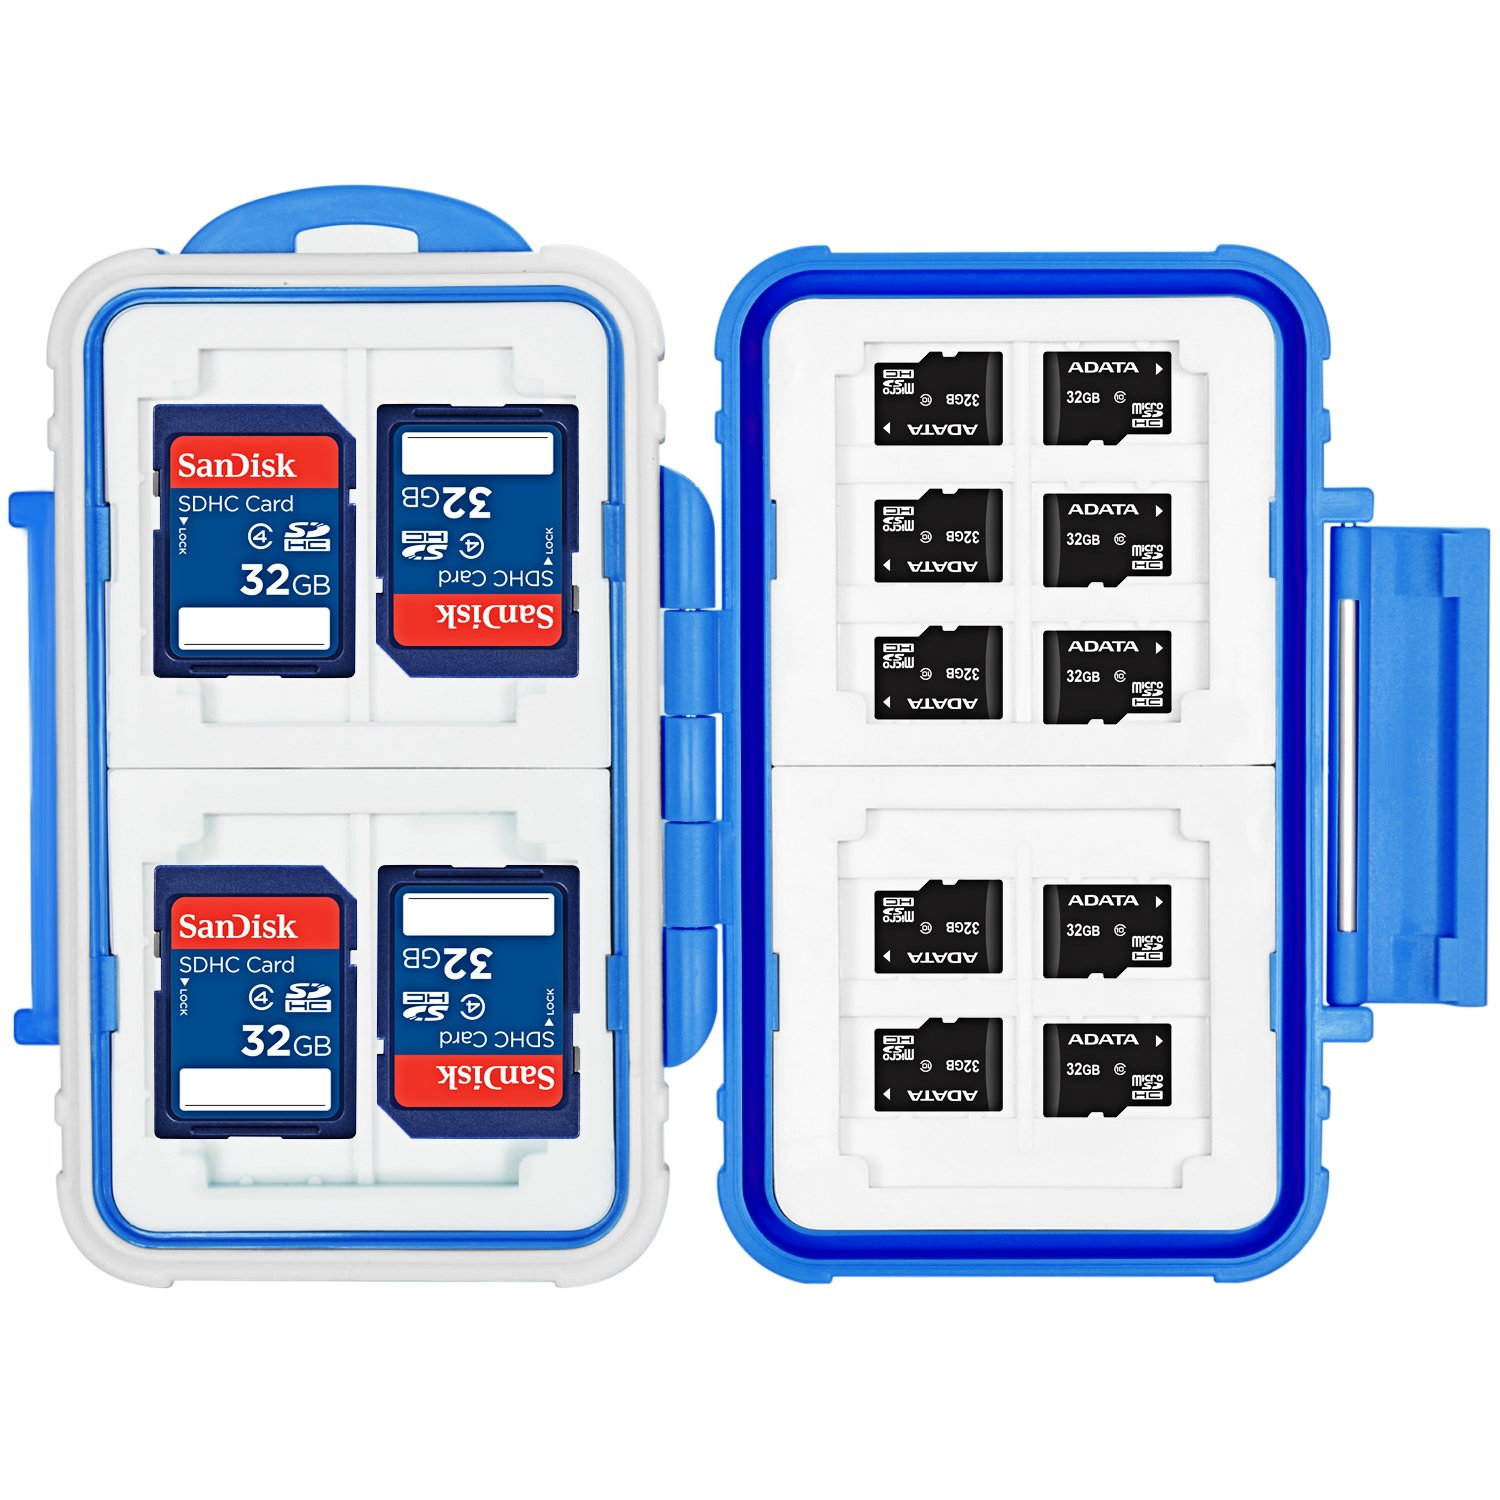 Neewer 14 Slots Memory Card Case Holder Portable Durable Waterproof Anti-shock Storage Protector Card Box for 10 Micro SD Cards//10 TF Cards//2 CF Cards and 4 SD Cards//4 XD Cards//2 CF Cards Red